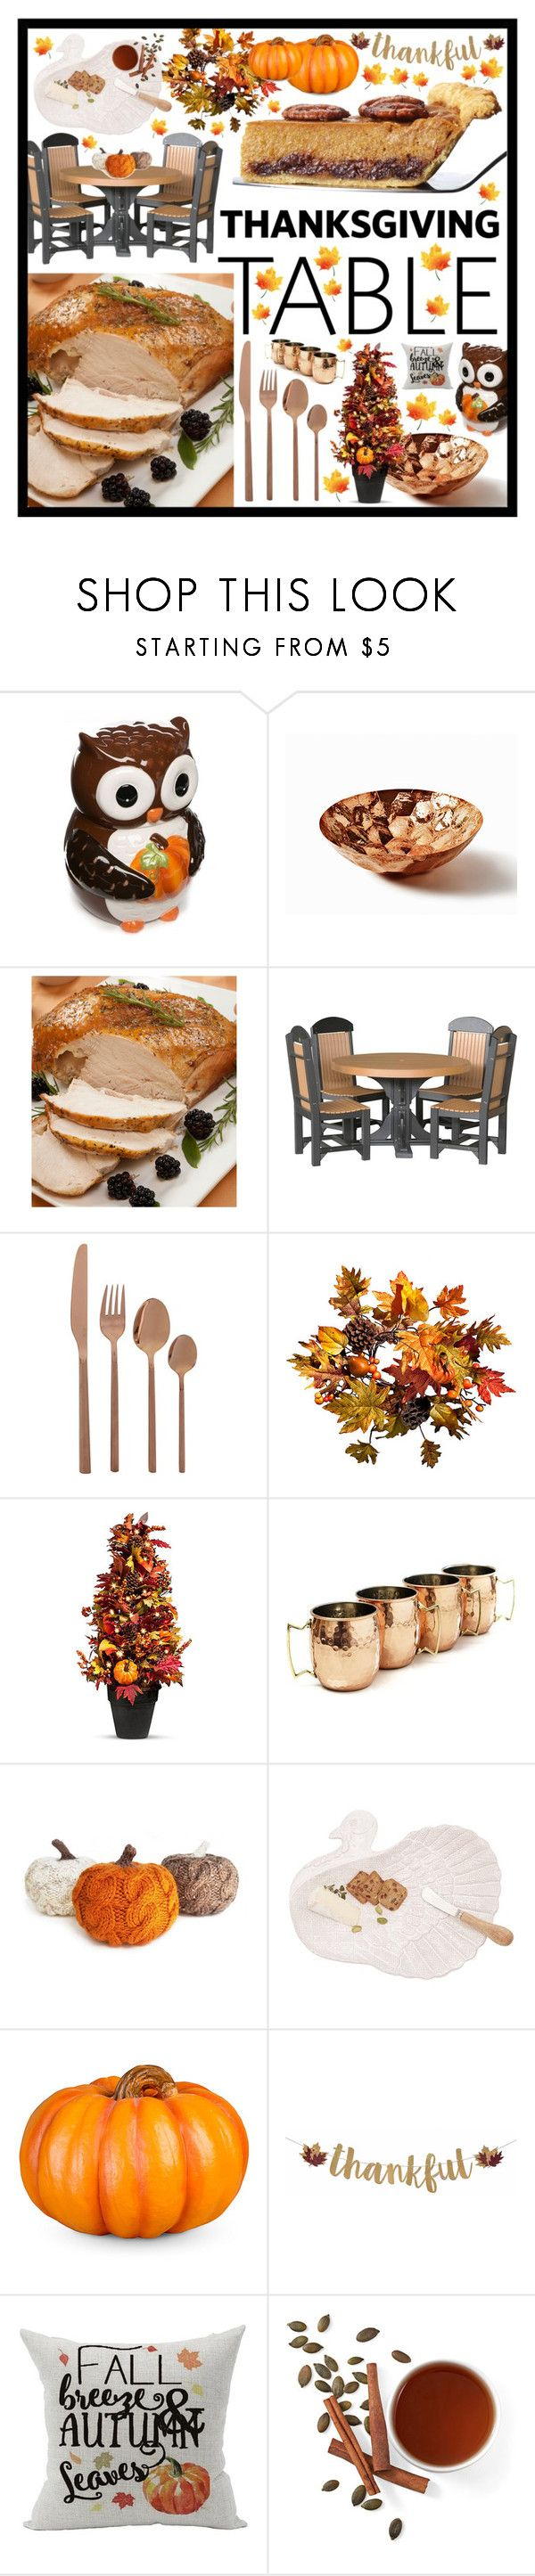 """""""Thanksgiving"""" by beanpod ❤ liked on Polyvore featuring Tom Dixon, DutchCrafters, Improvements and Old Dutch"""